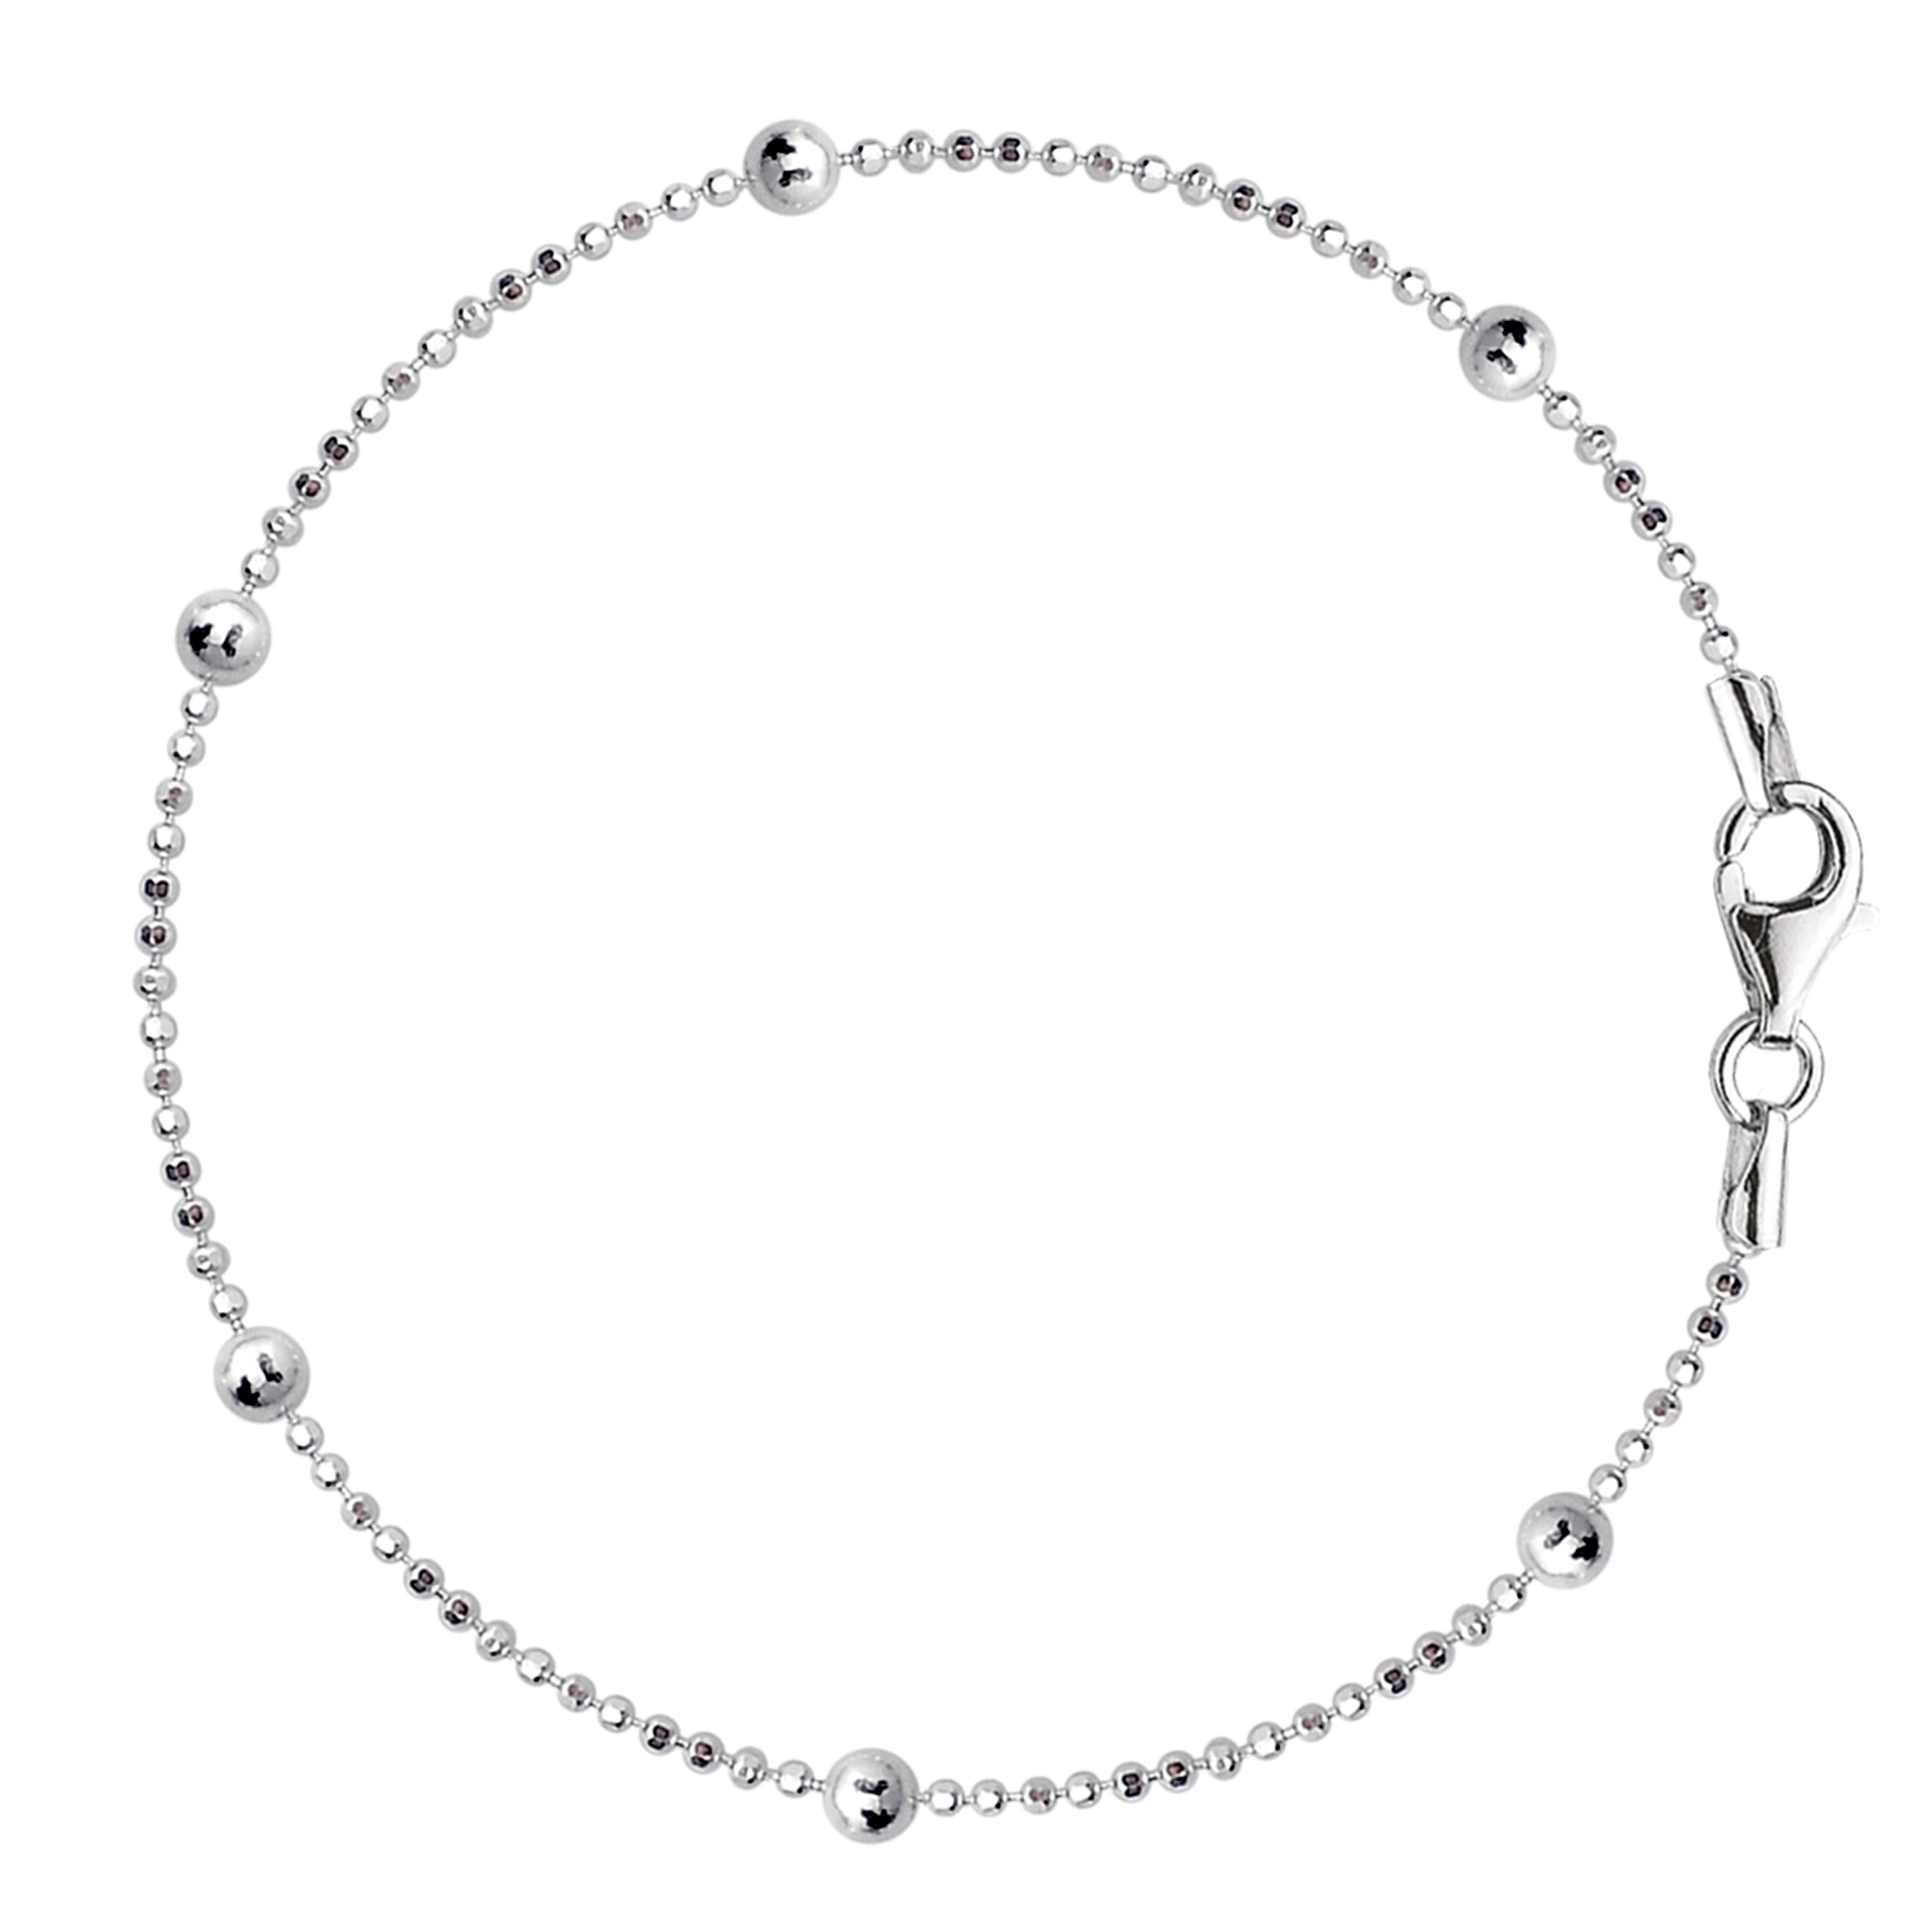 Bead Link Chain Anklet In Sterling Silver, 10″